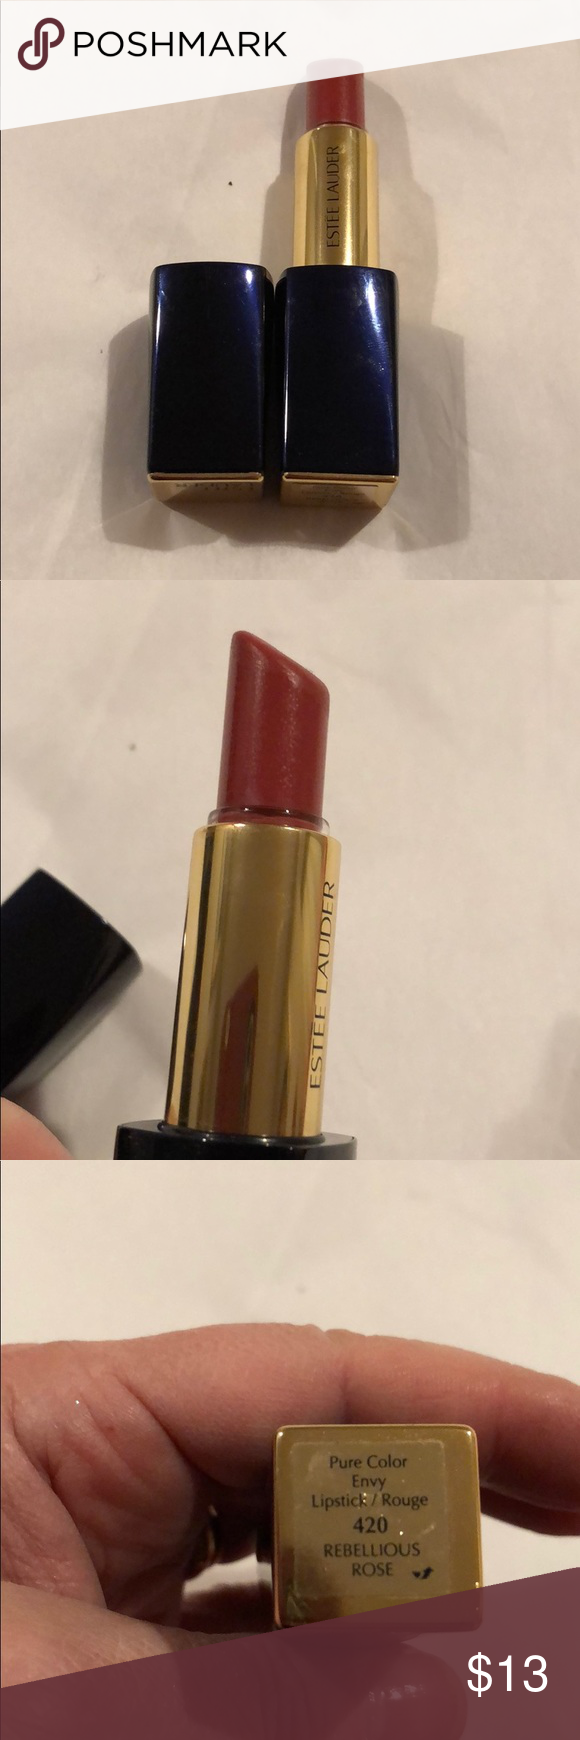 Estée Lauder Envy Lipstick 420 Rebellious Rose Pure Color Envy Sculpting Lipstick 420 Rebellious Rose Super Crea Lipstick Pure Color Envy Estee Lauder Makeup